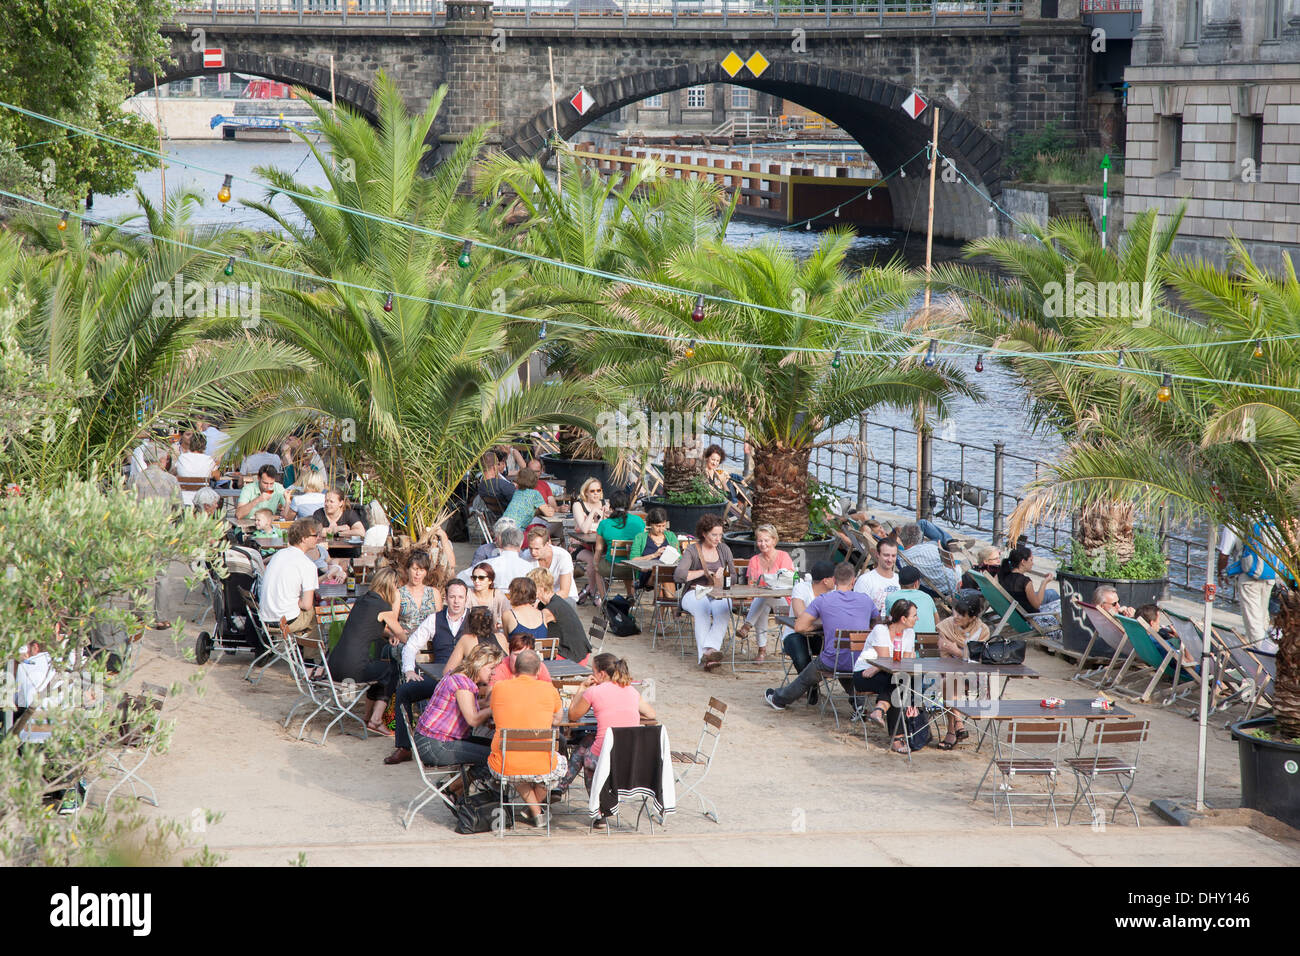 people at bar and cafe terrace in monbijou park by river spree stock photo 62673862 alamy. Black Bedroom Furniture Sets. Home Design Ideas